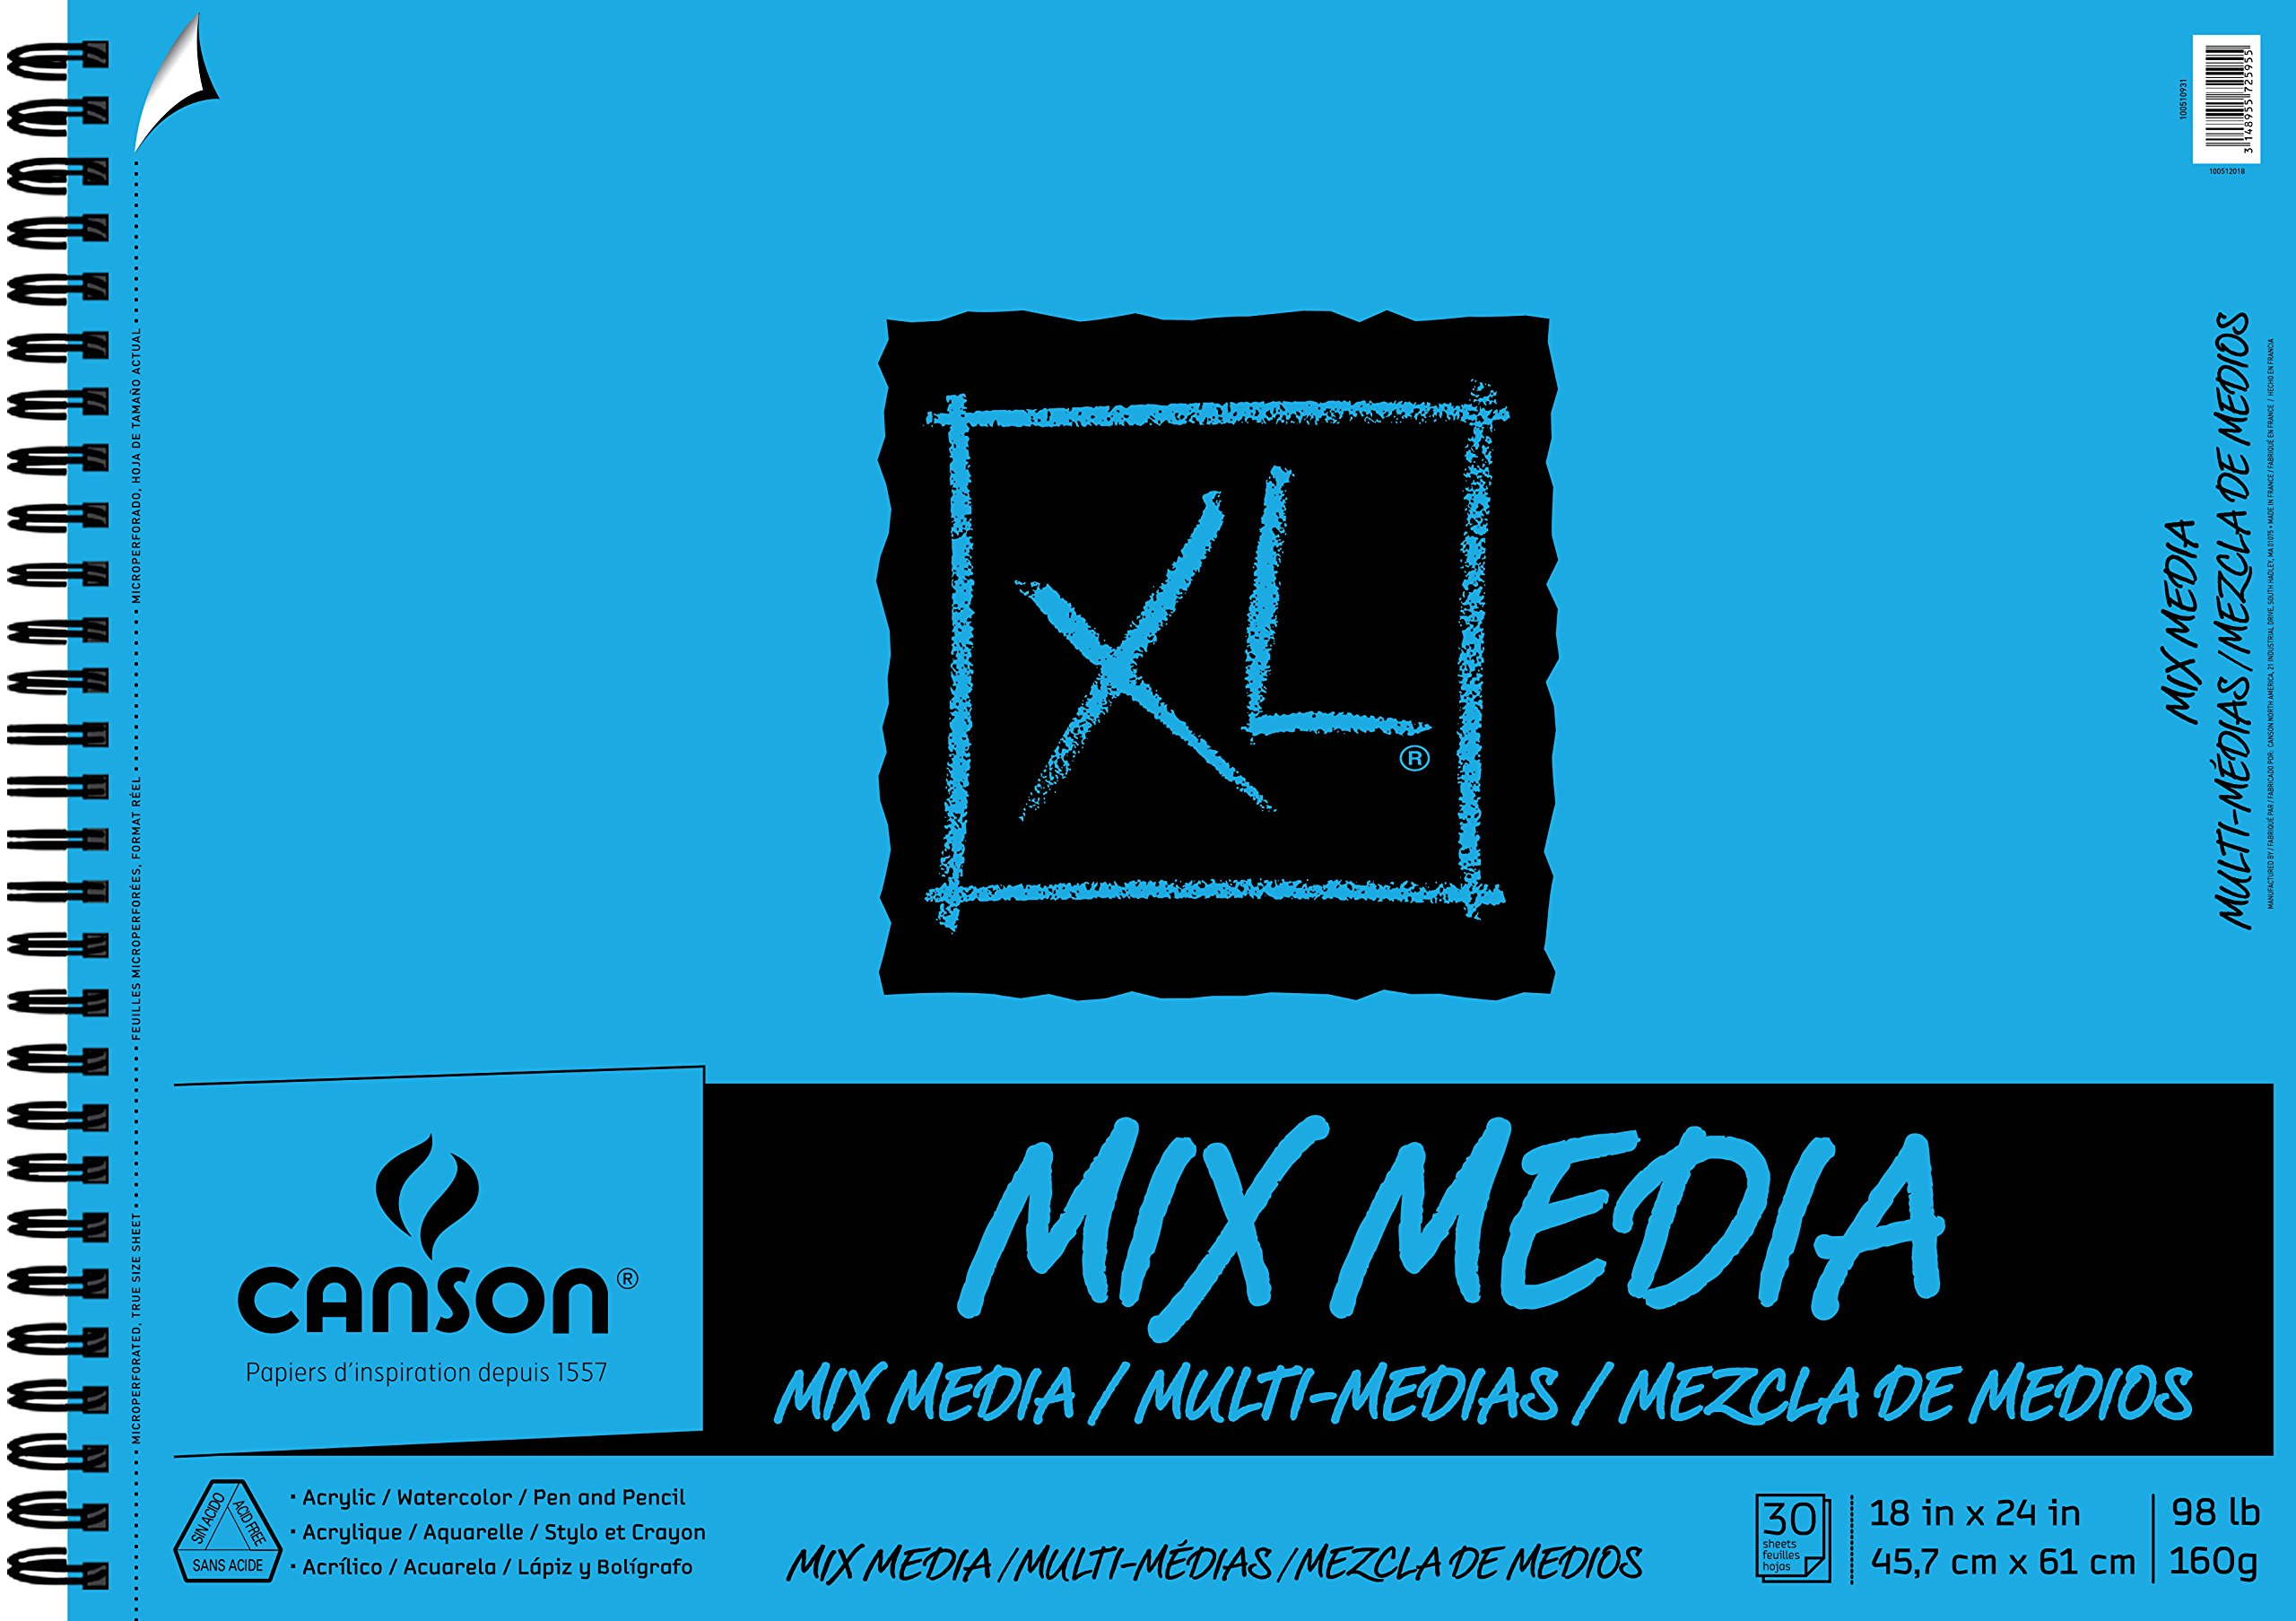 """Canson XL Series Mix Paper Pad, Heavyweight, Fine Texture, Heavy Sizing for Wet and Dry Media, Side Wire Bound, 98 Pound, 18 x 24 in, 30 Sheets, 18""""X24"""", 0"""